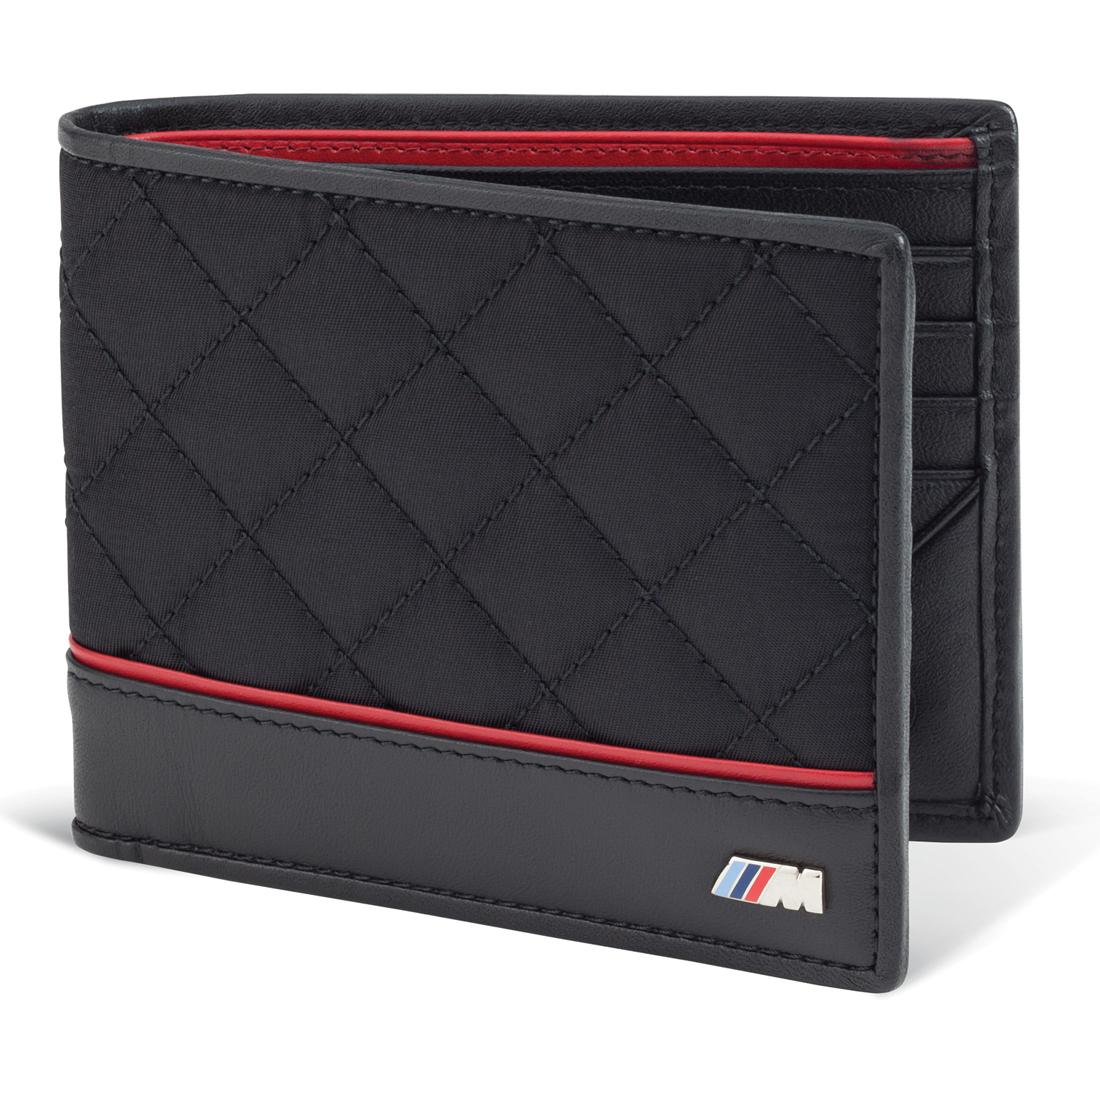 The BMW Quilted leather wallet.